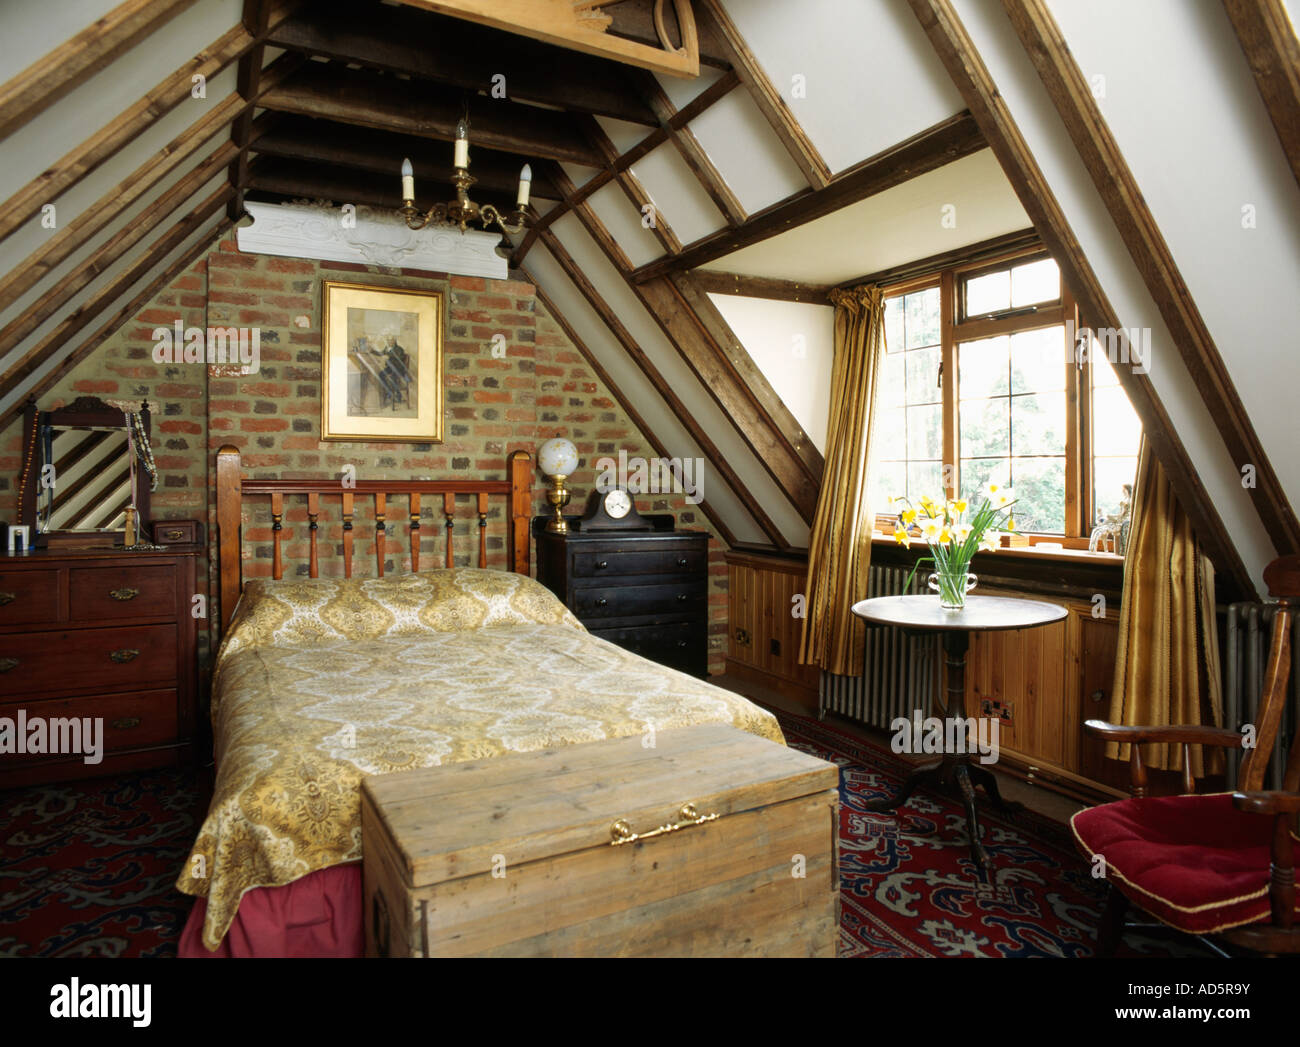 Attic Bed wooden chest below bed in attic bedroom with brick wall and beamed